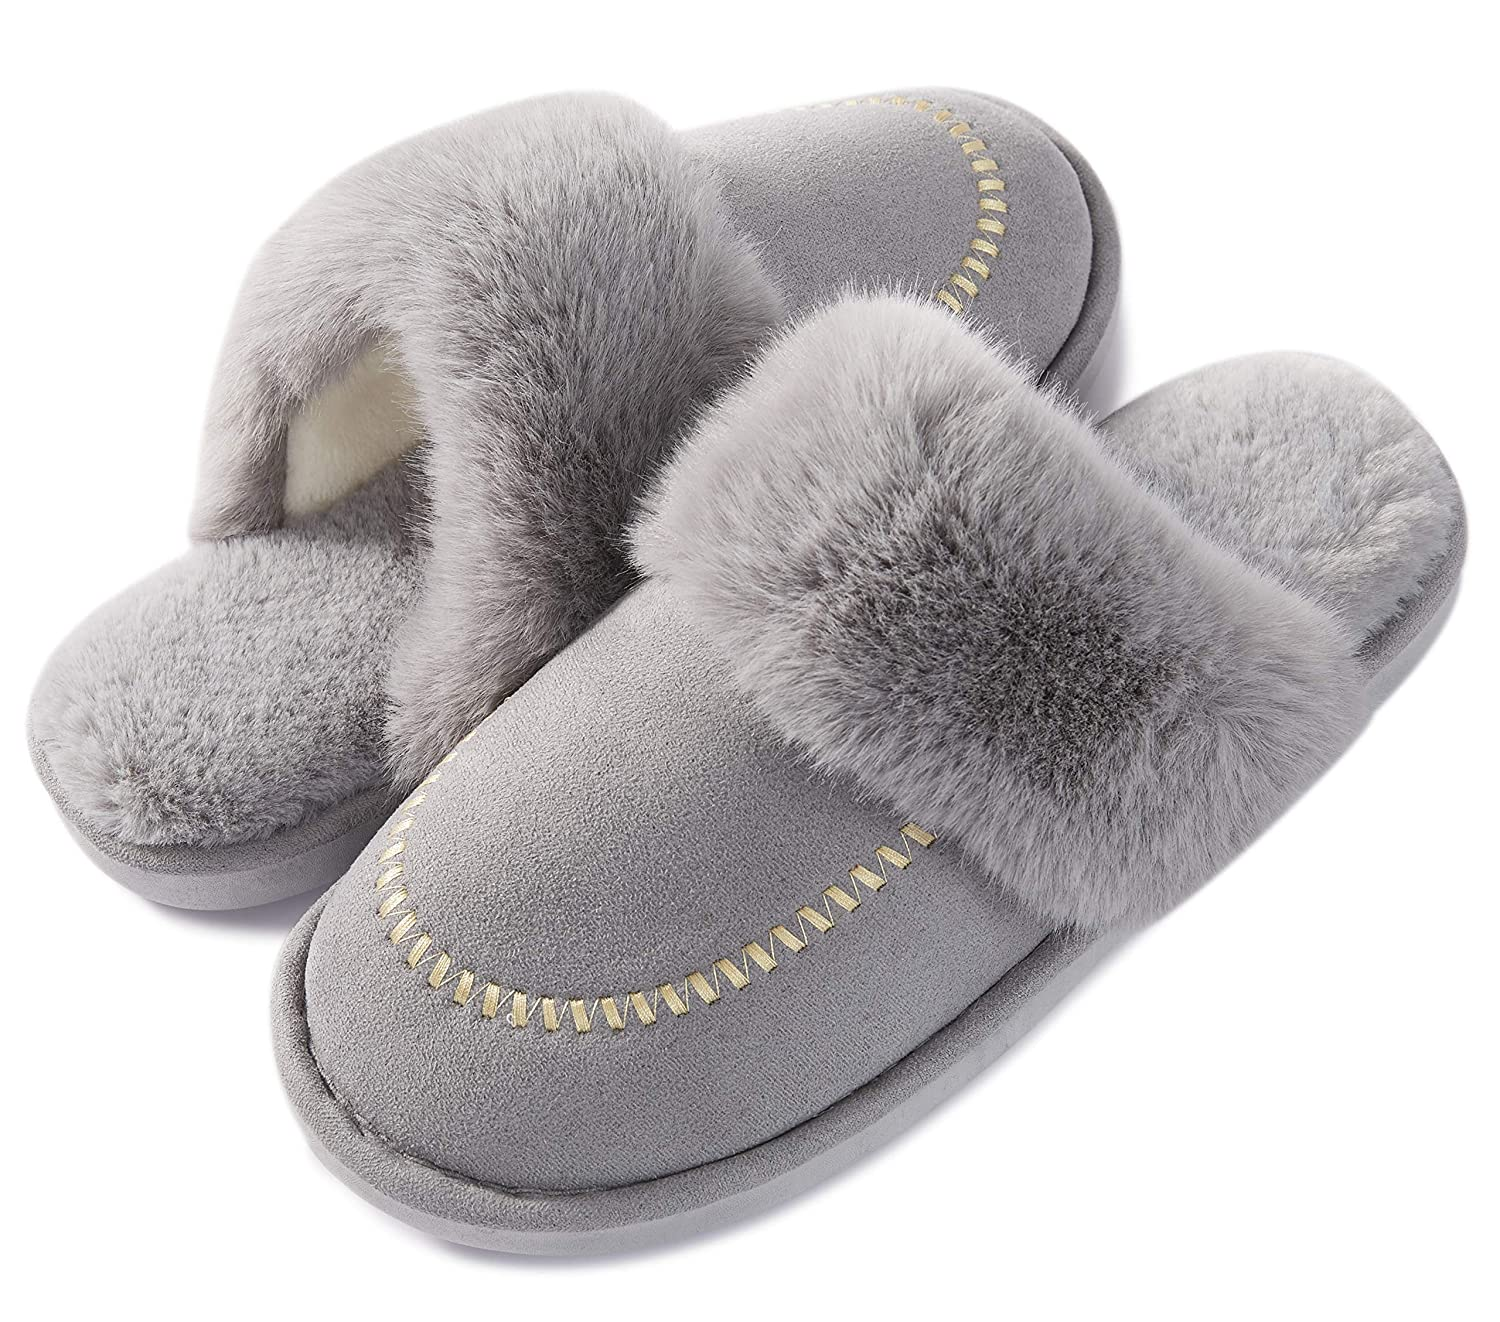 f78f9dc6040c4 Womens Slippers,Memory Foam Fluffy Warm Non-Slip Comfortable Slip-on House  Shoes,Plush Indoor & Outdoor Winter